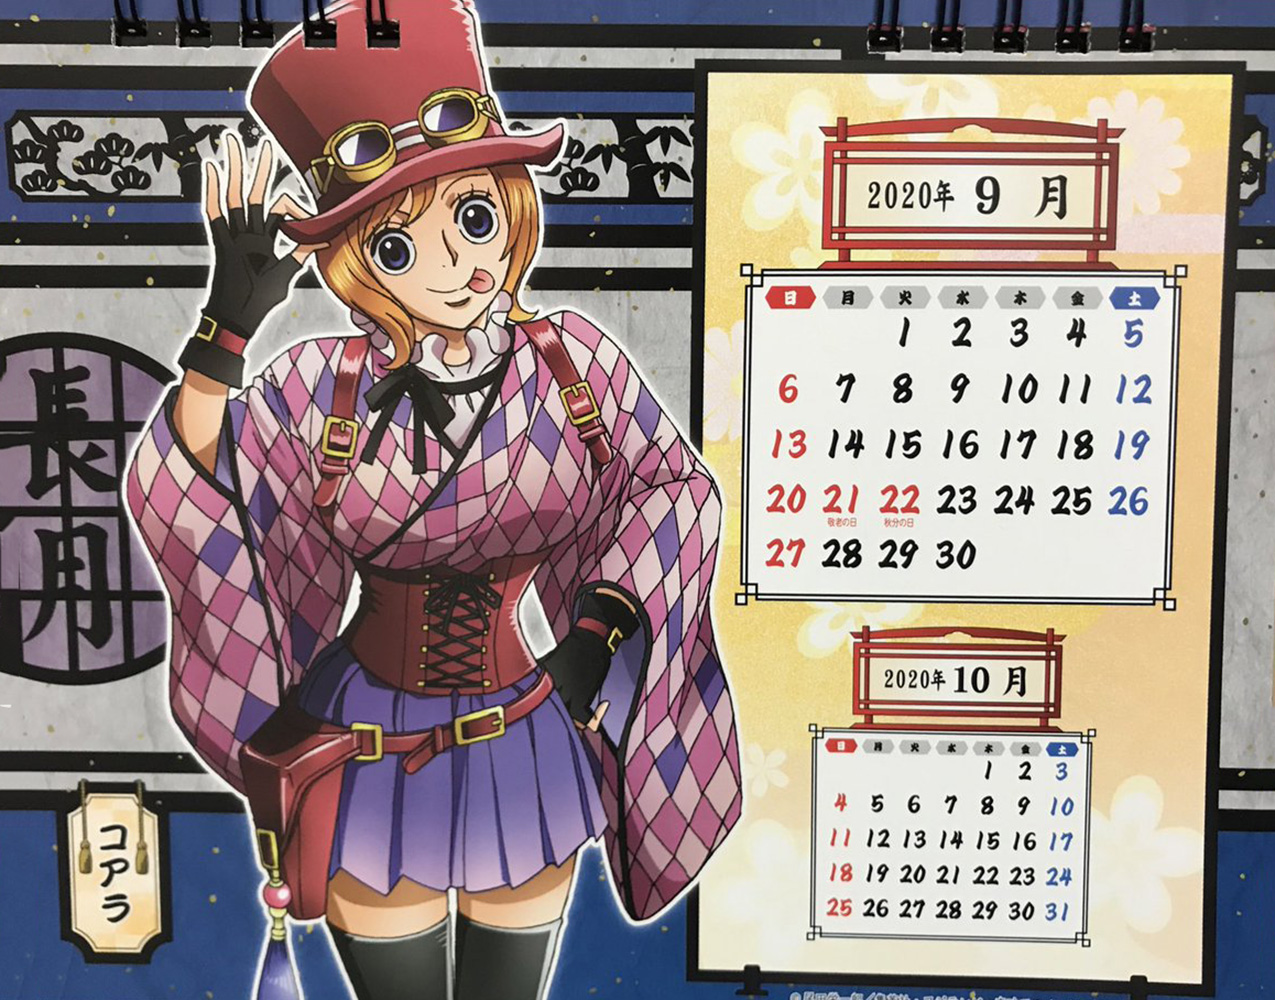 09 Koala (One Piece Tsuya Pirate Age Girls 2020 Calendar)